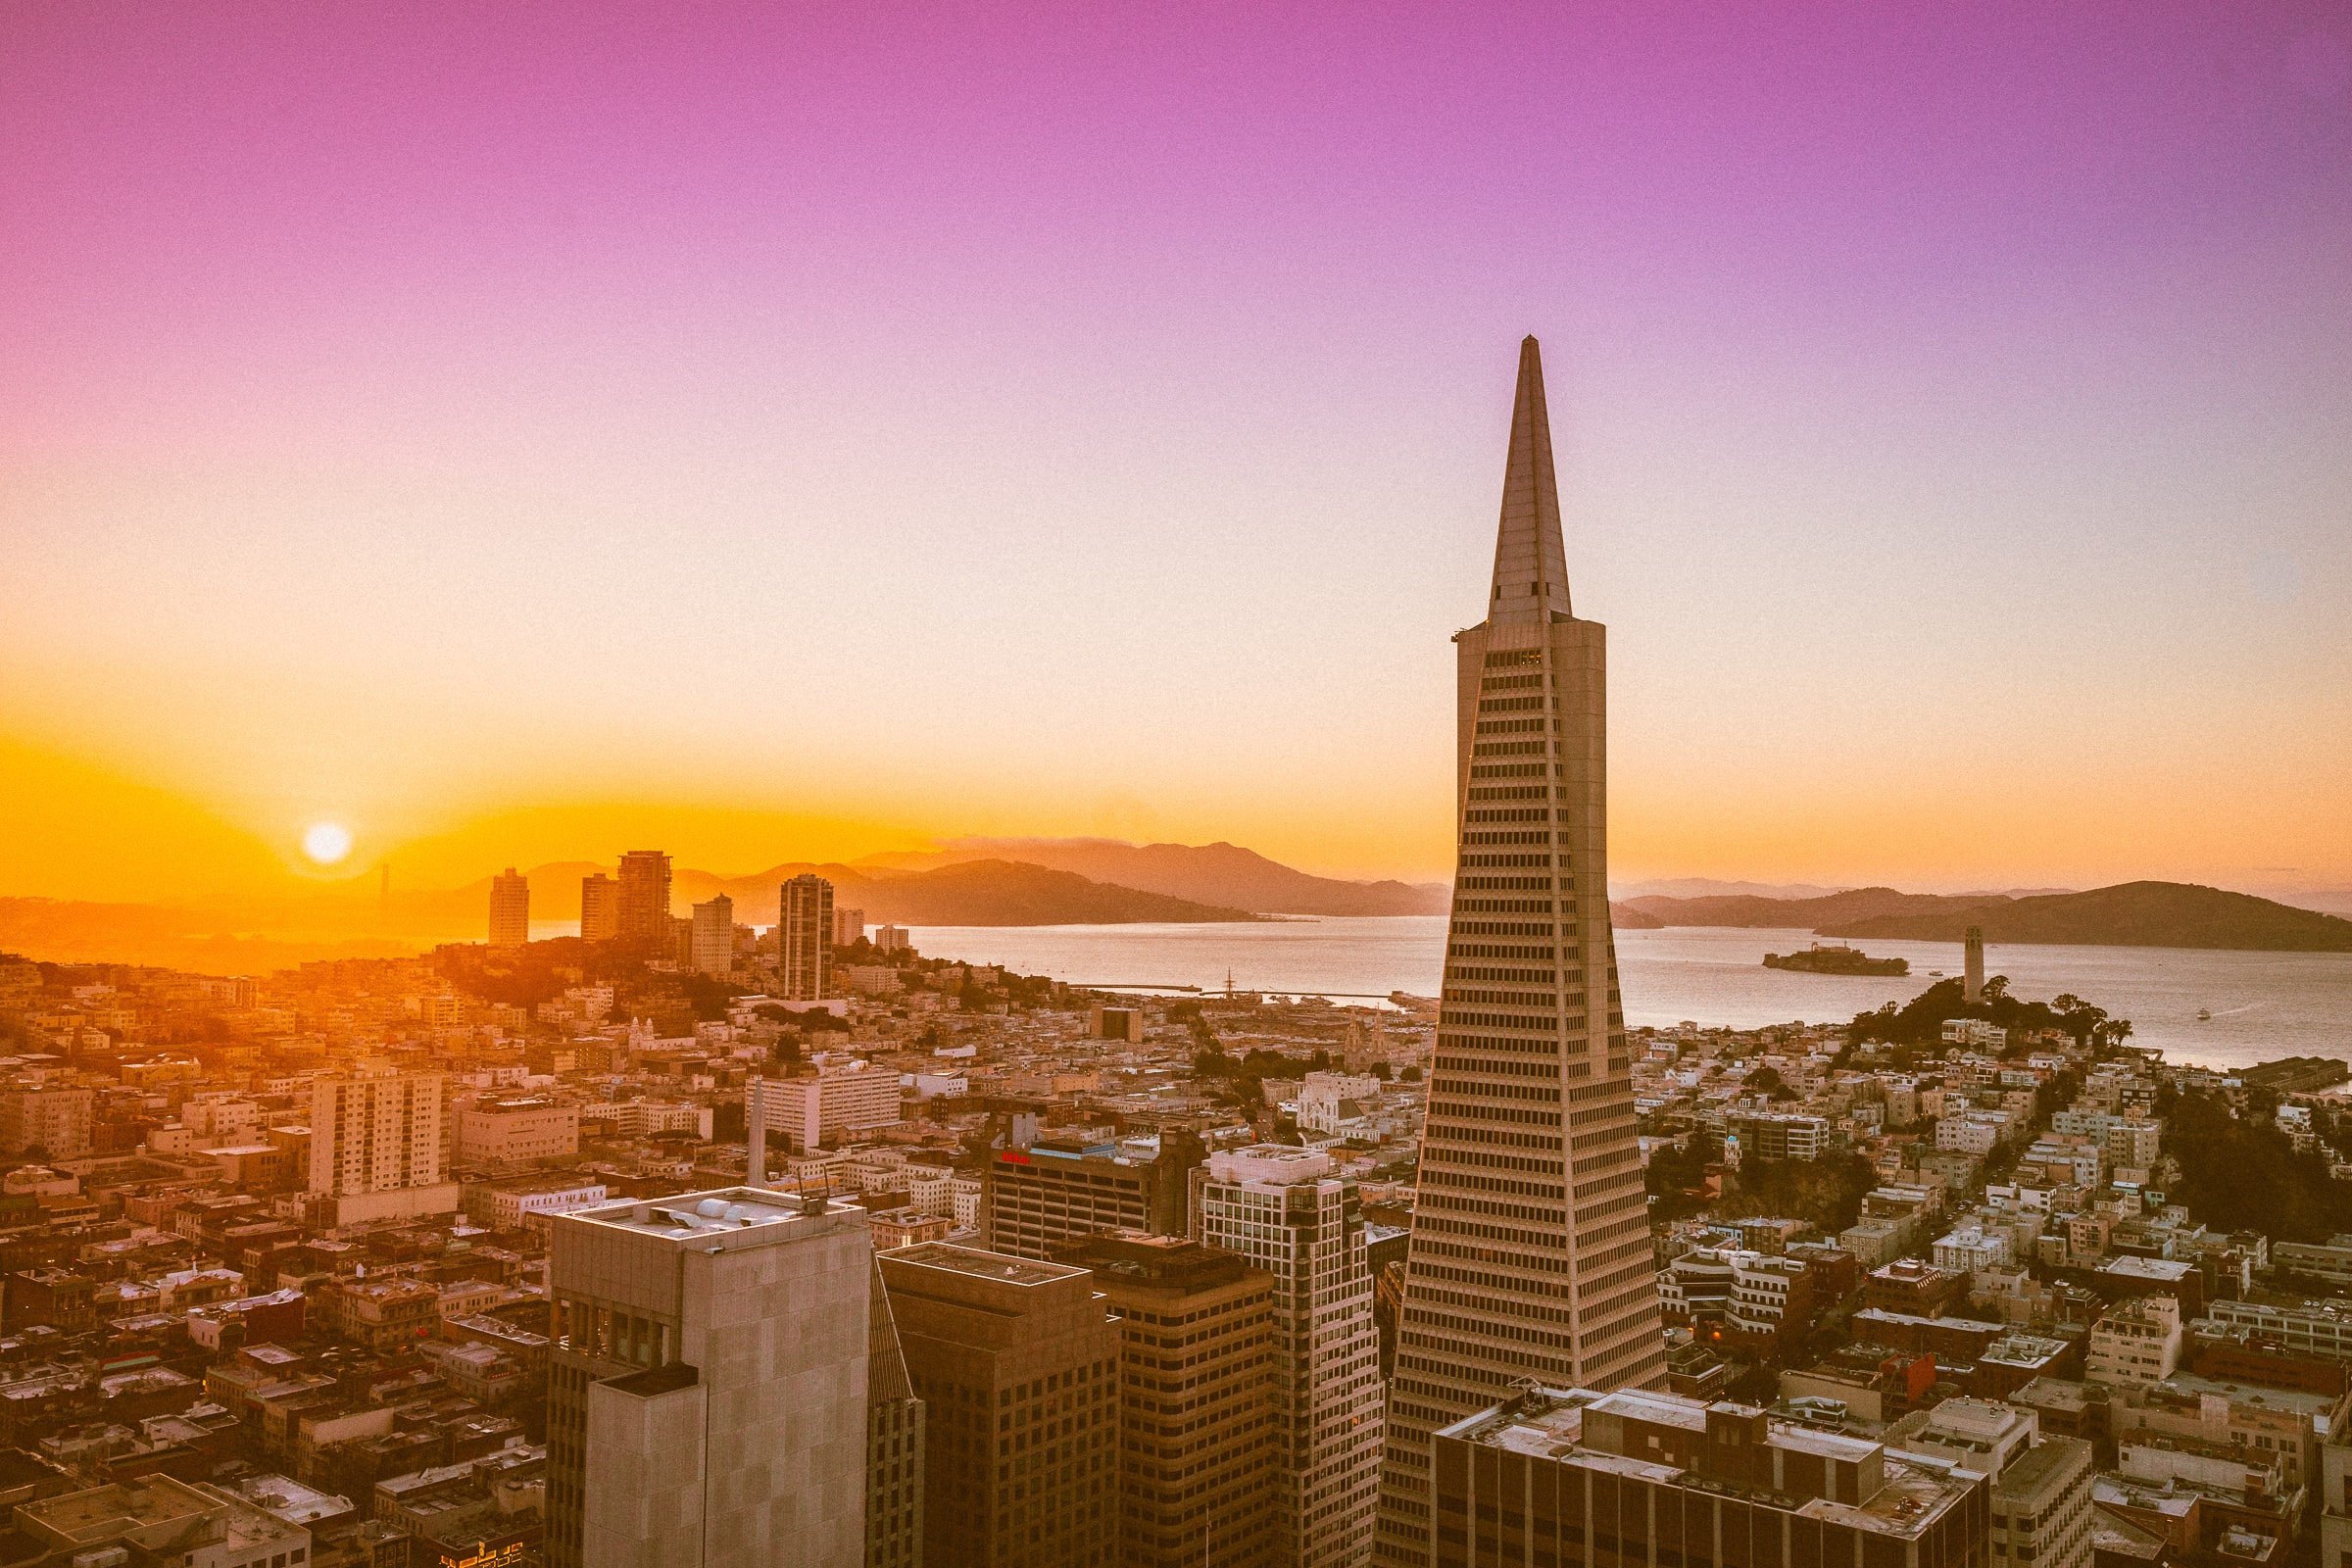 The skyline of San Francisco with the Transamerica Pyramid Center during sunset.